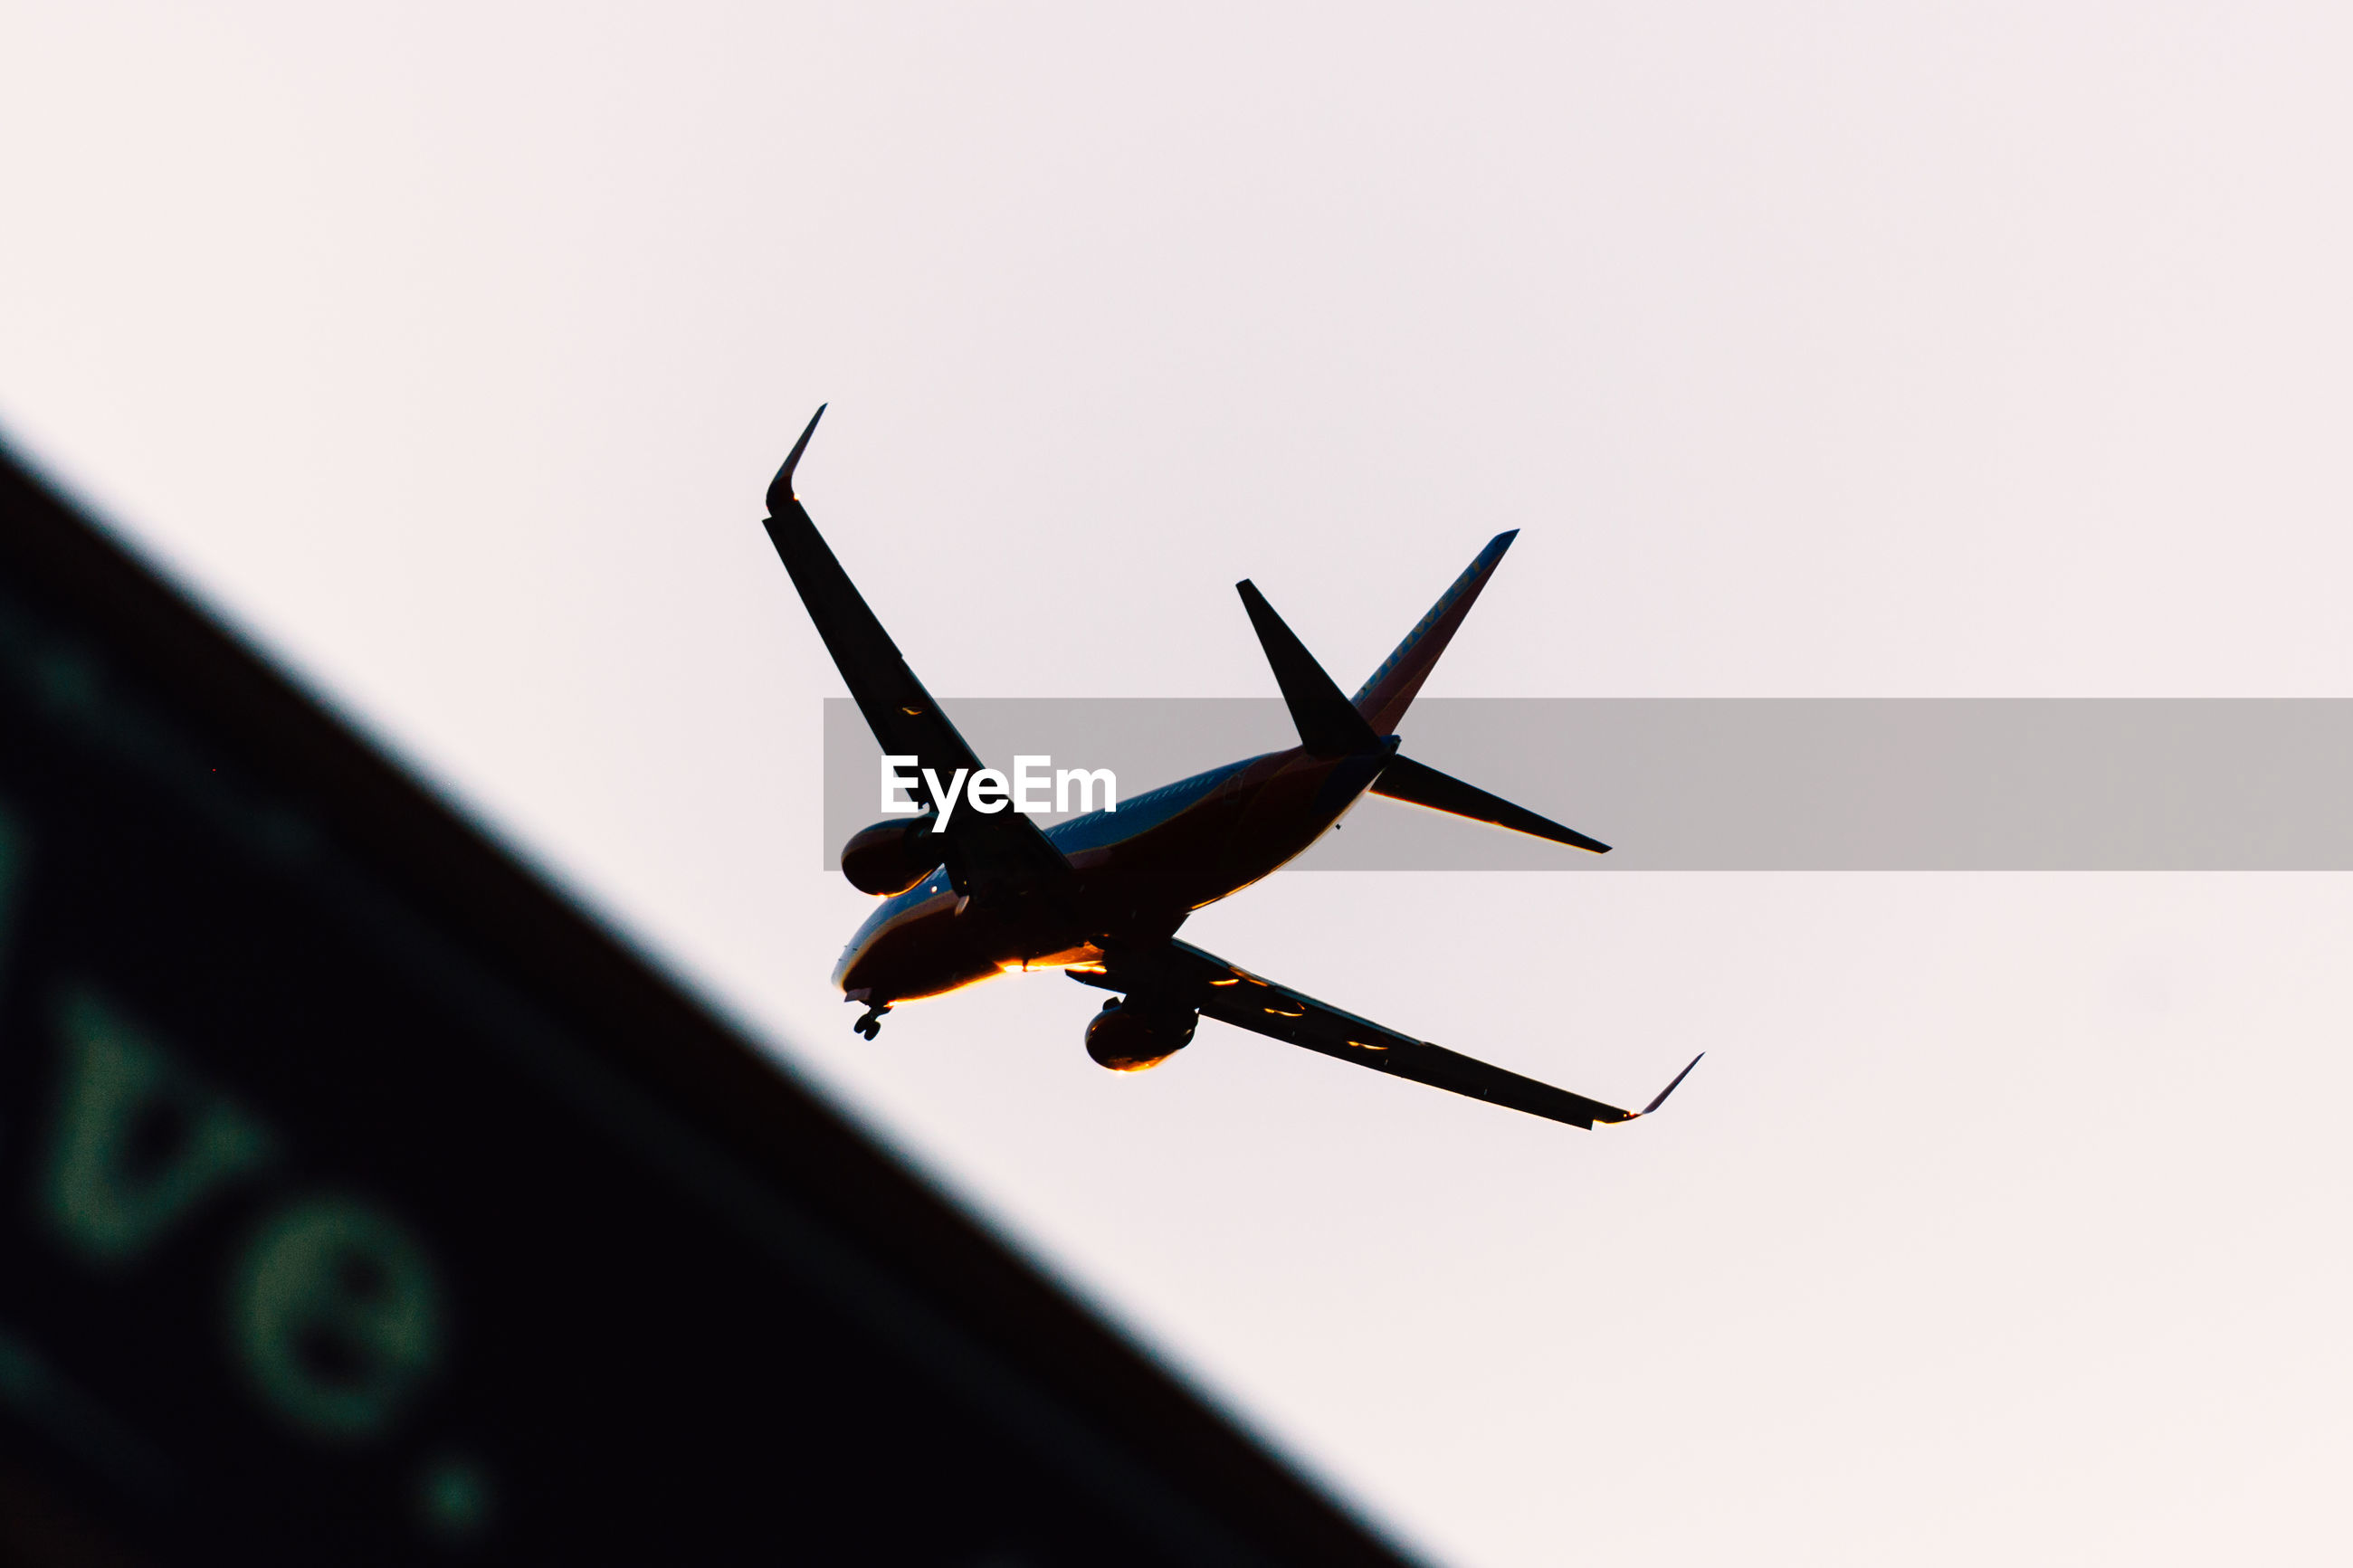 Low angle view of silhouette airplane flying against clear sky during sunset